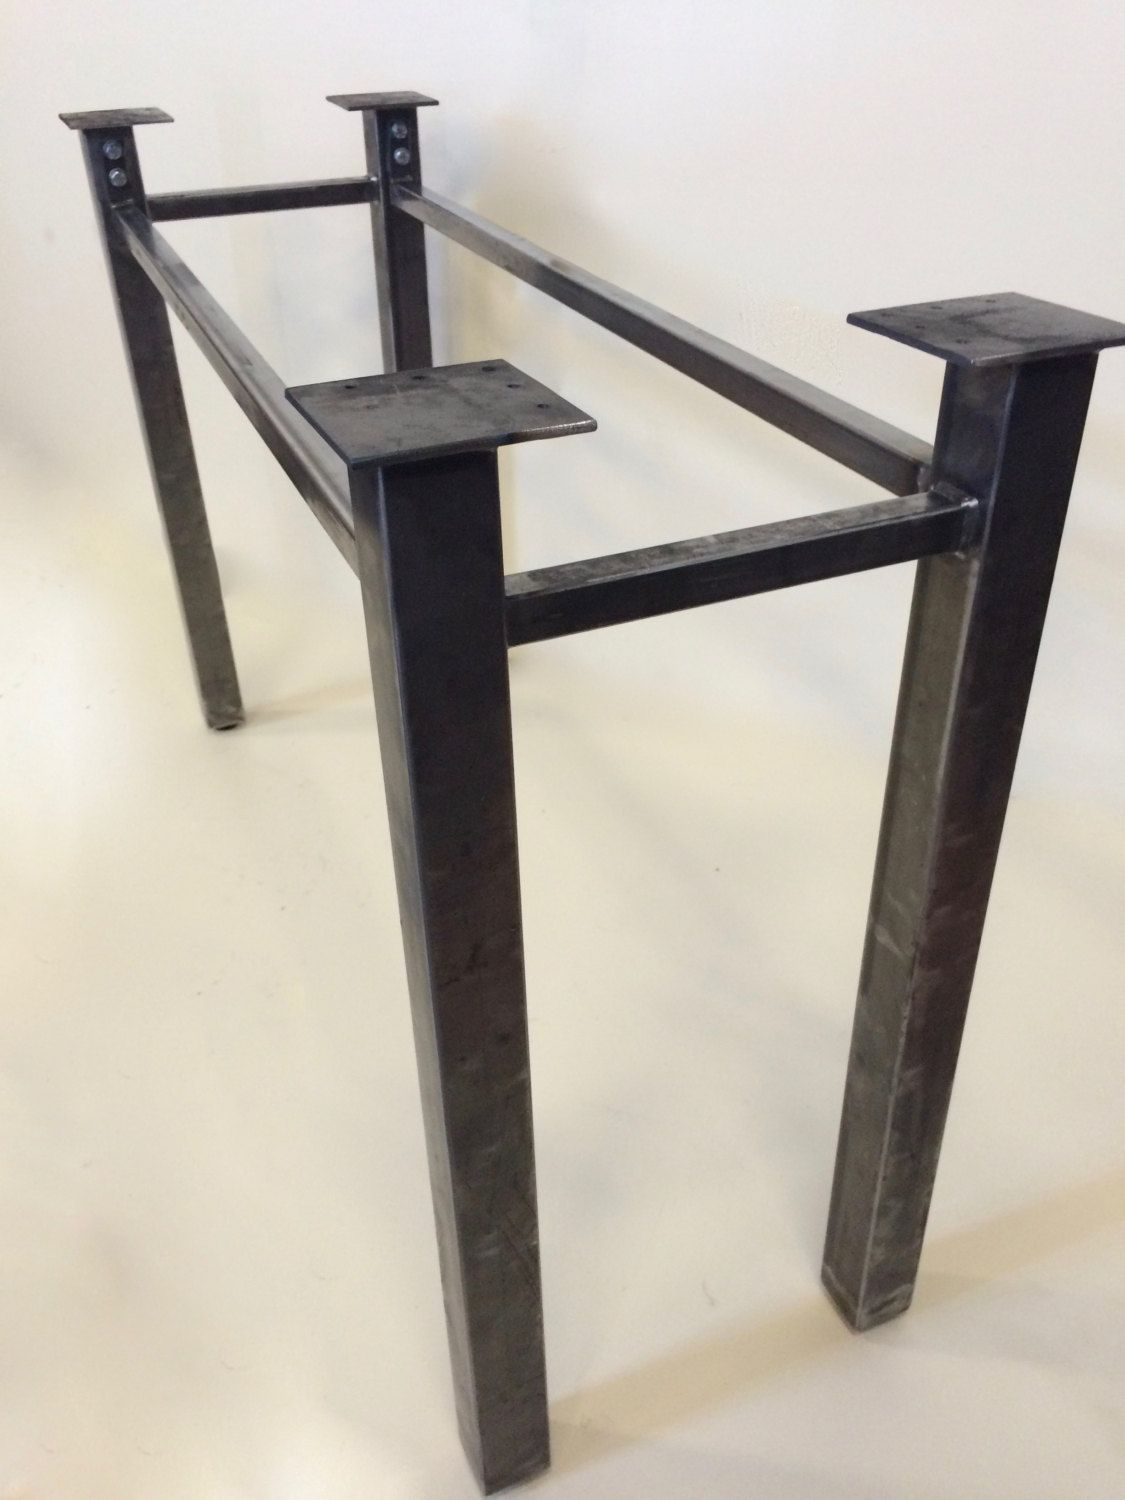 Metal Leg Desk Set Of 2 Legs Steel Sturdy Legs Metal Table Legs